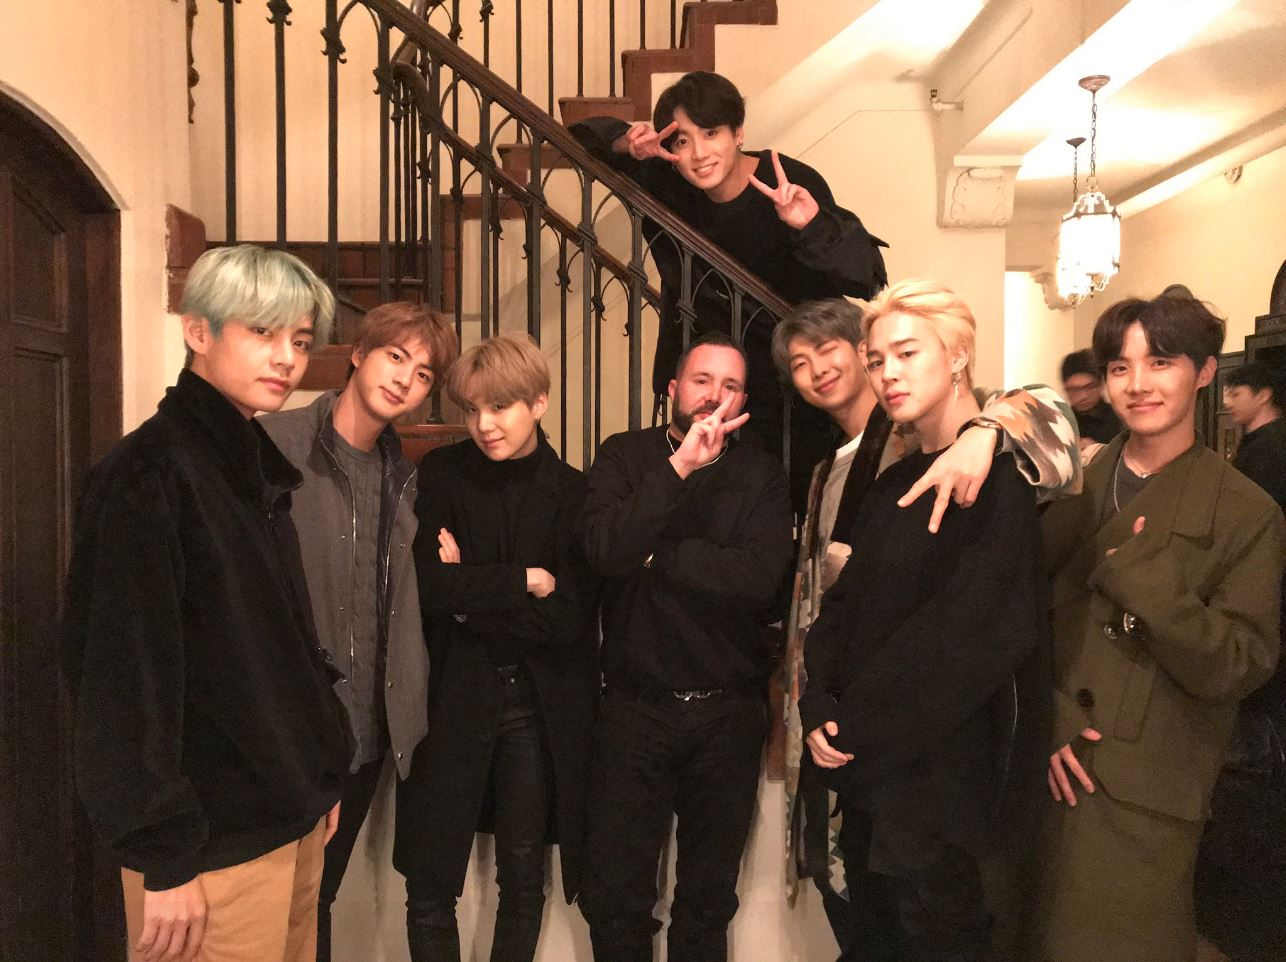 BTS hint at Grammys outfits as they hang out with Dior designer